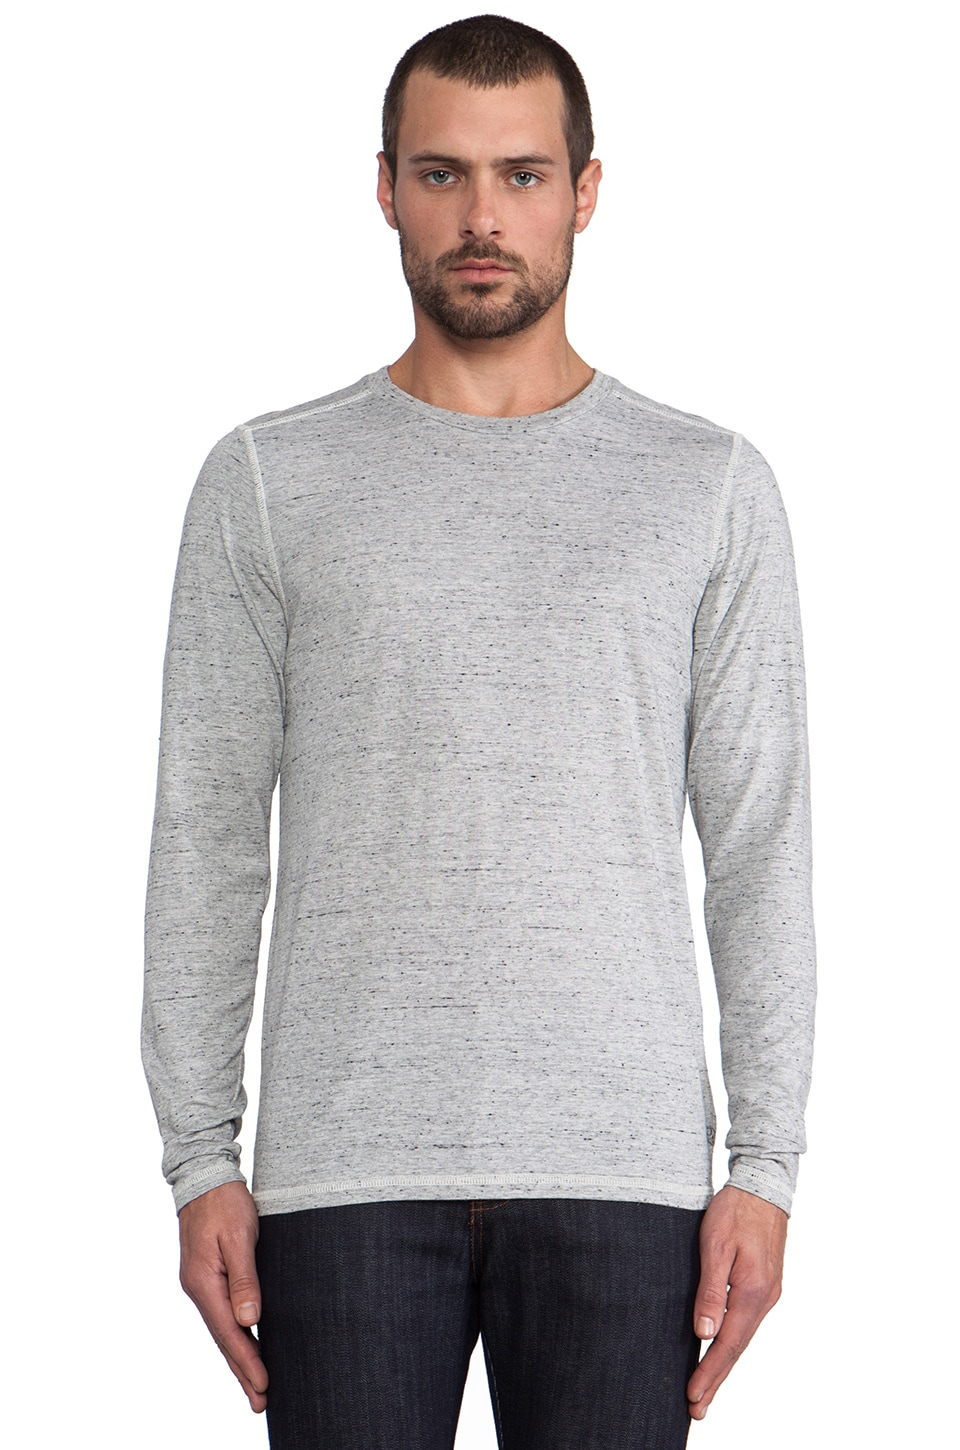 AG Adriano Goldschmied L/S Tri-Blend Crew in Peppered Grey